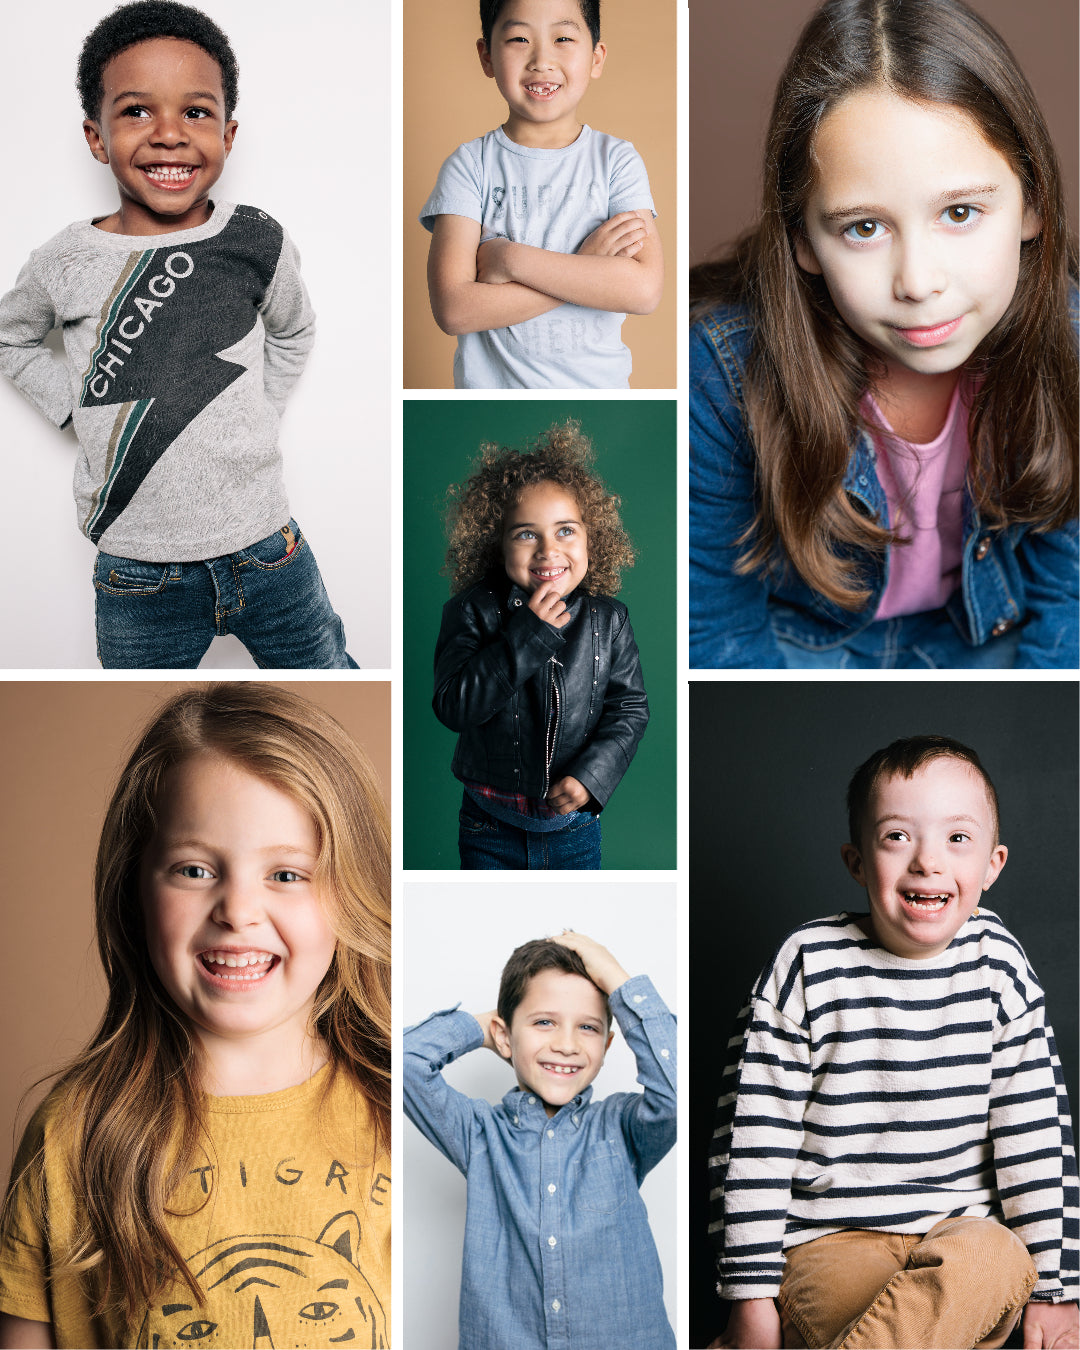 ALPS Little Actors Workshop 7-12 years old. Nov 14, 1pm-4pm